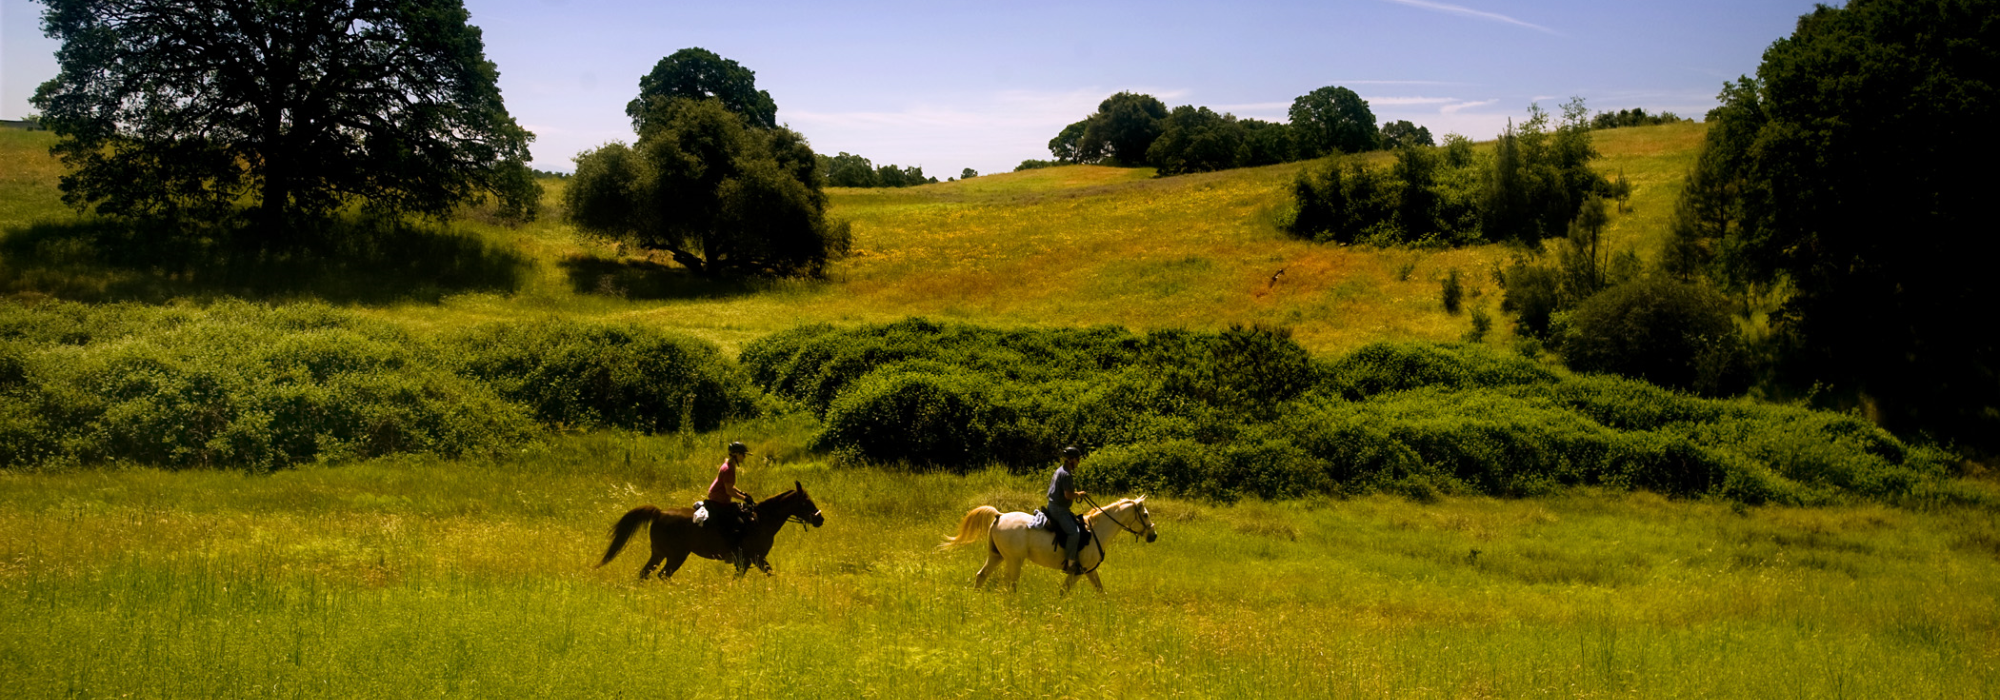 Horses galloping the fields